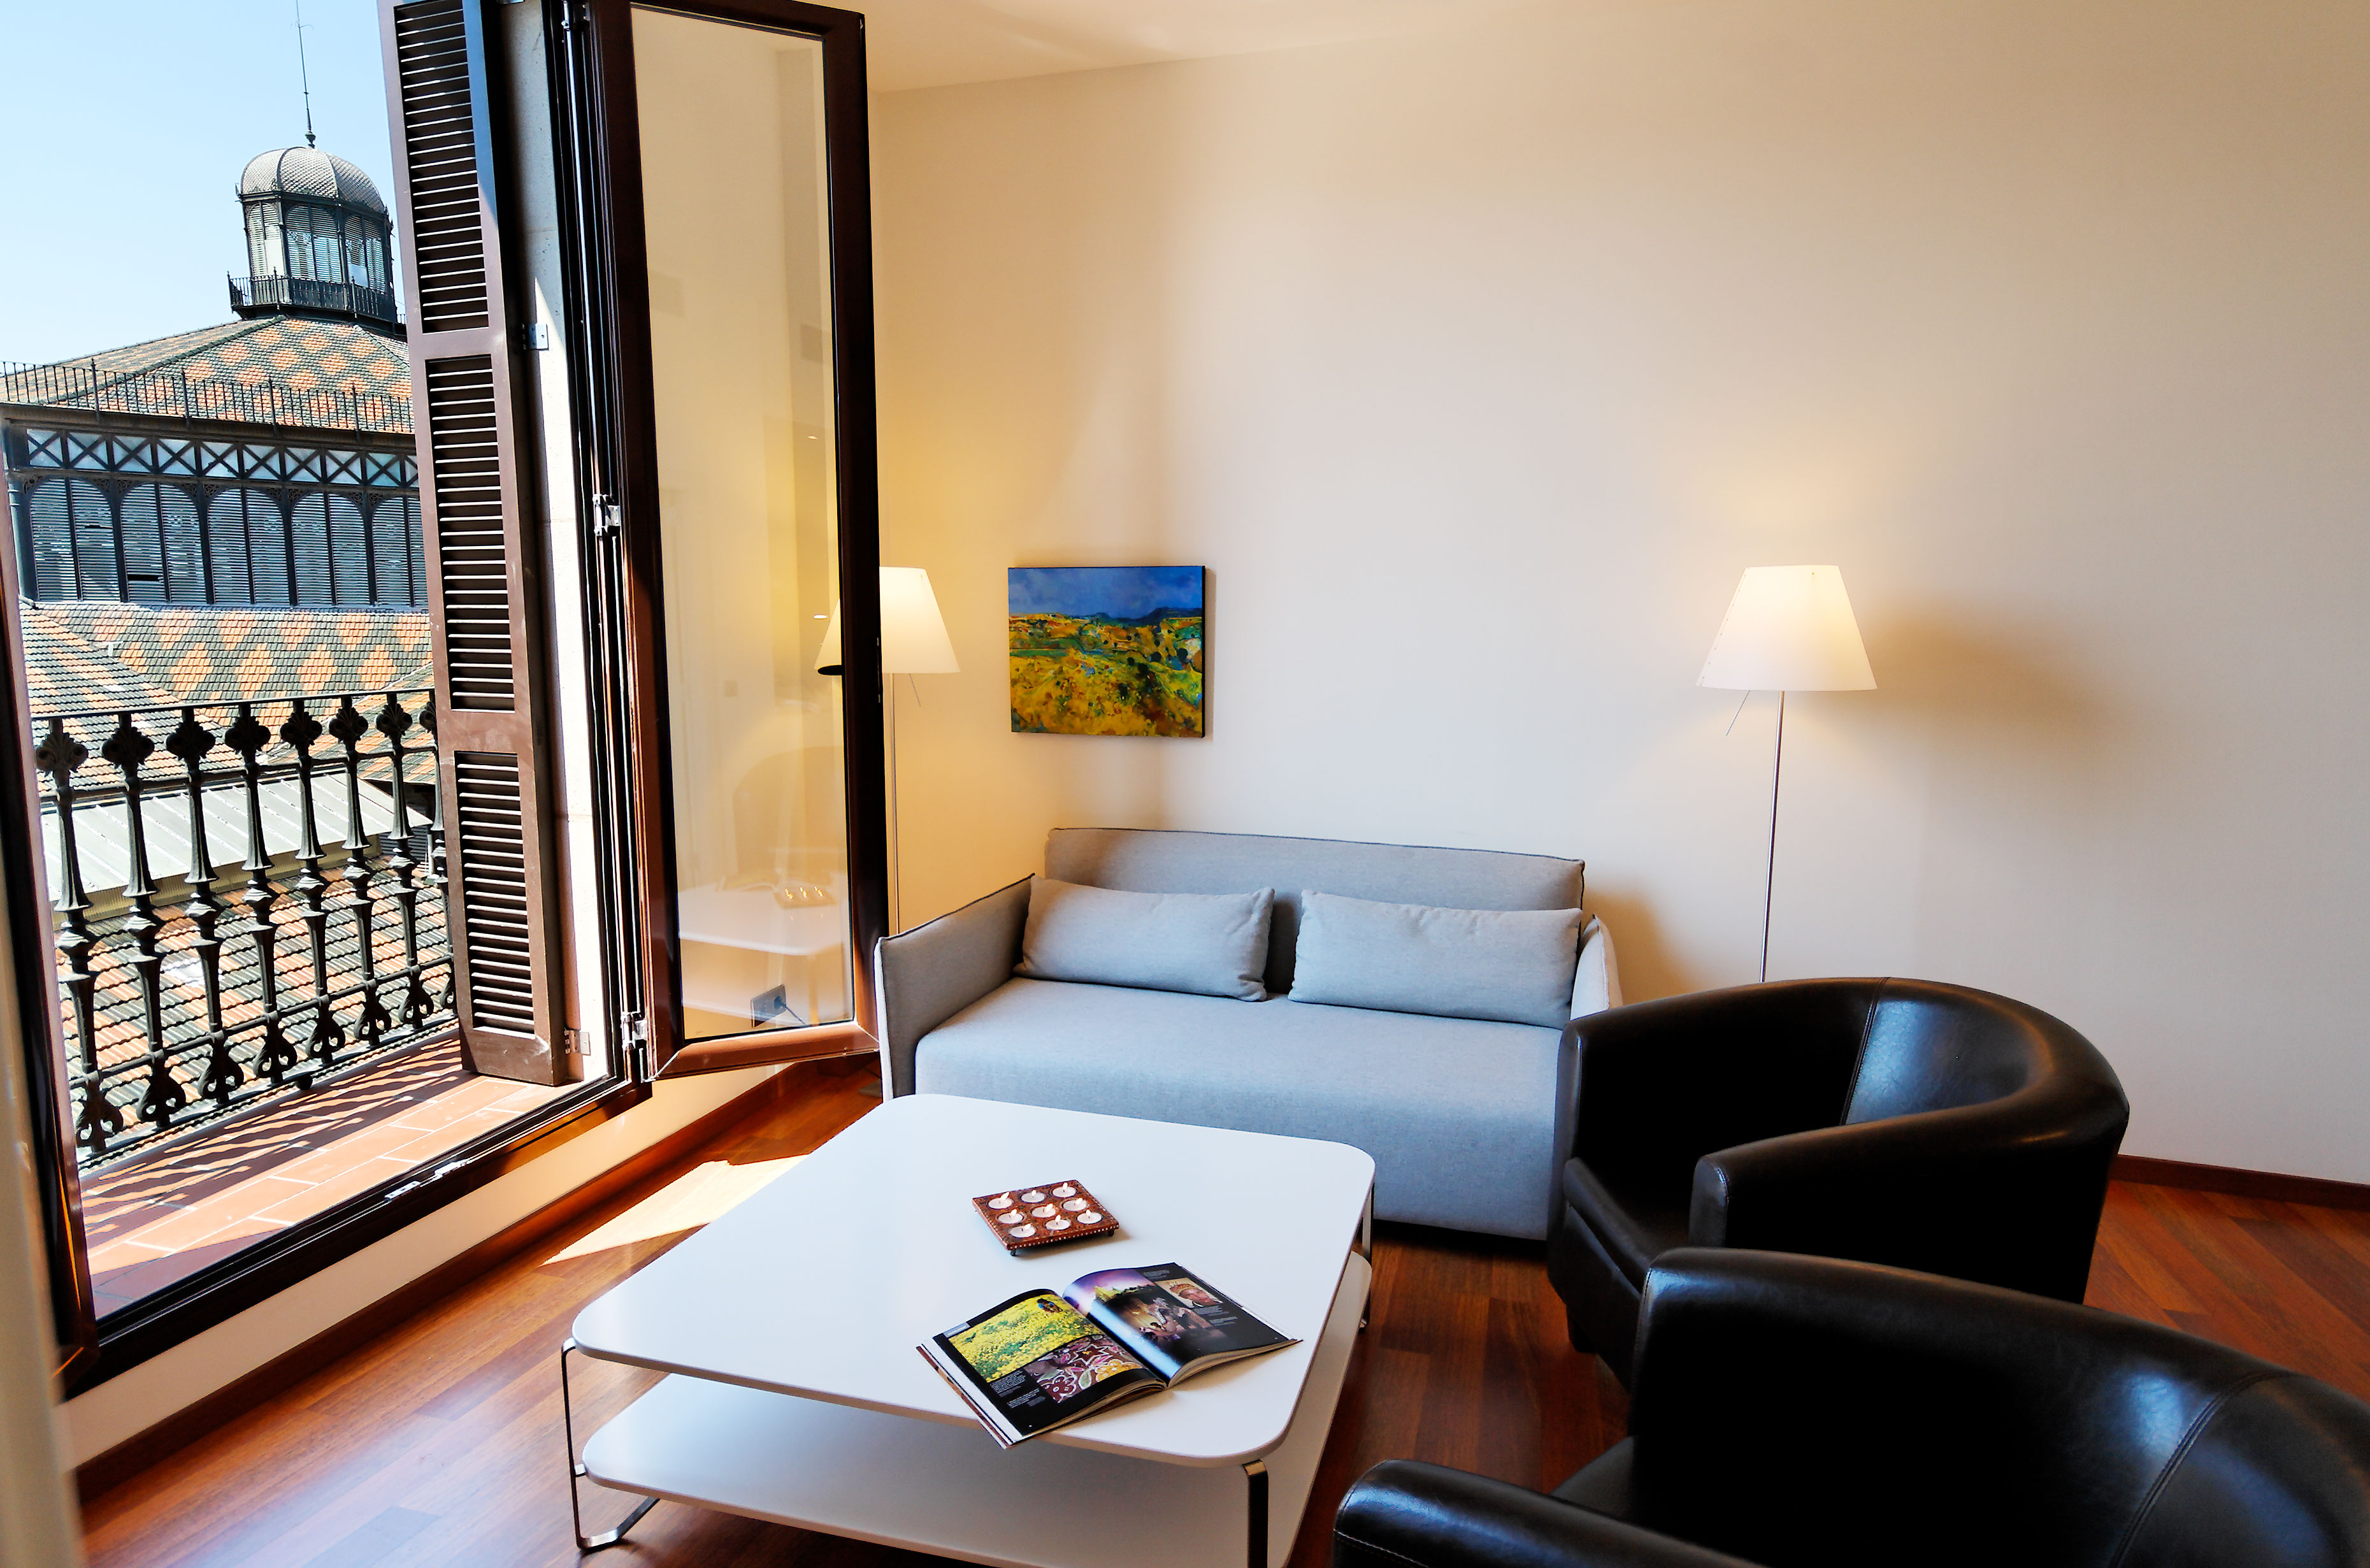 designer bedroom duplex holiday apartments el born barcelona